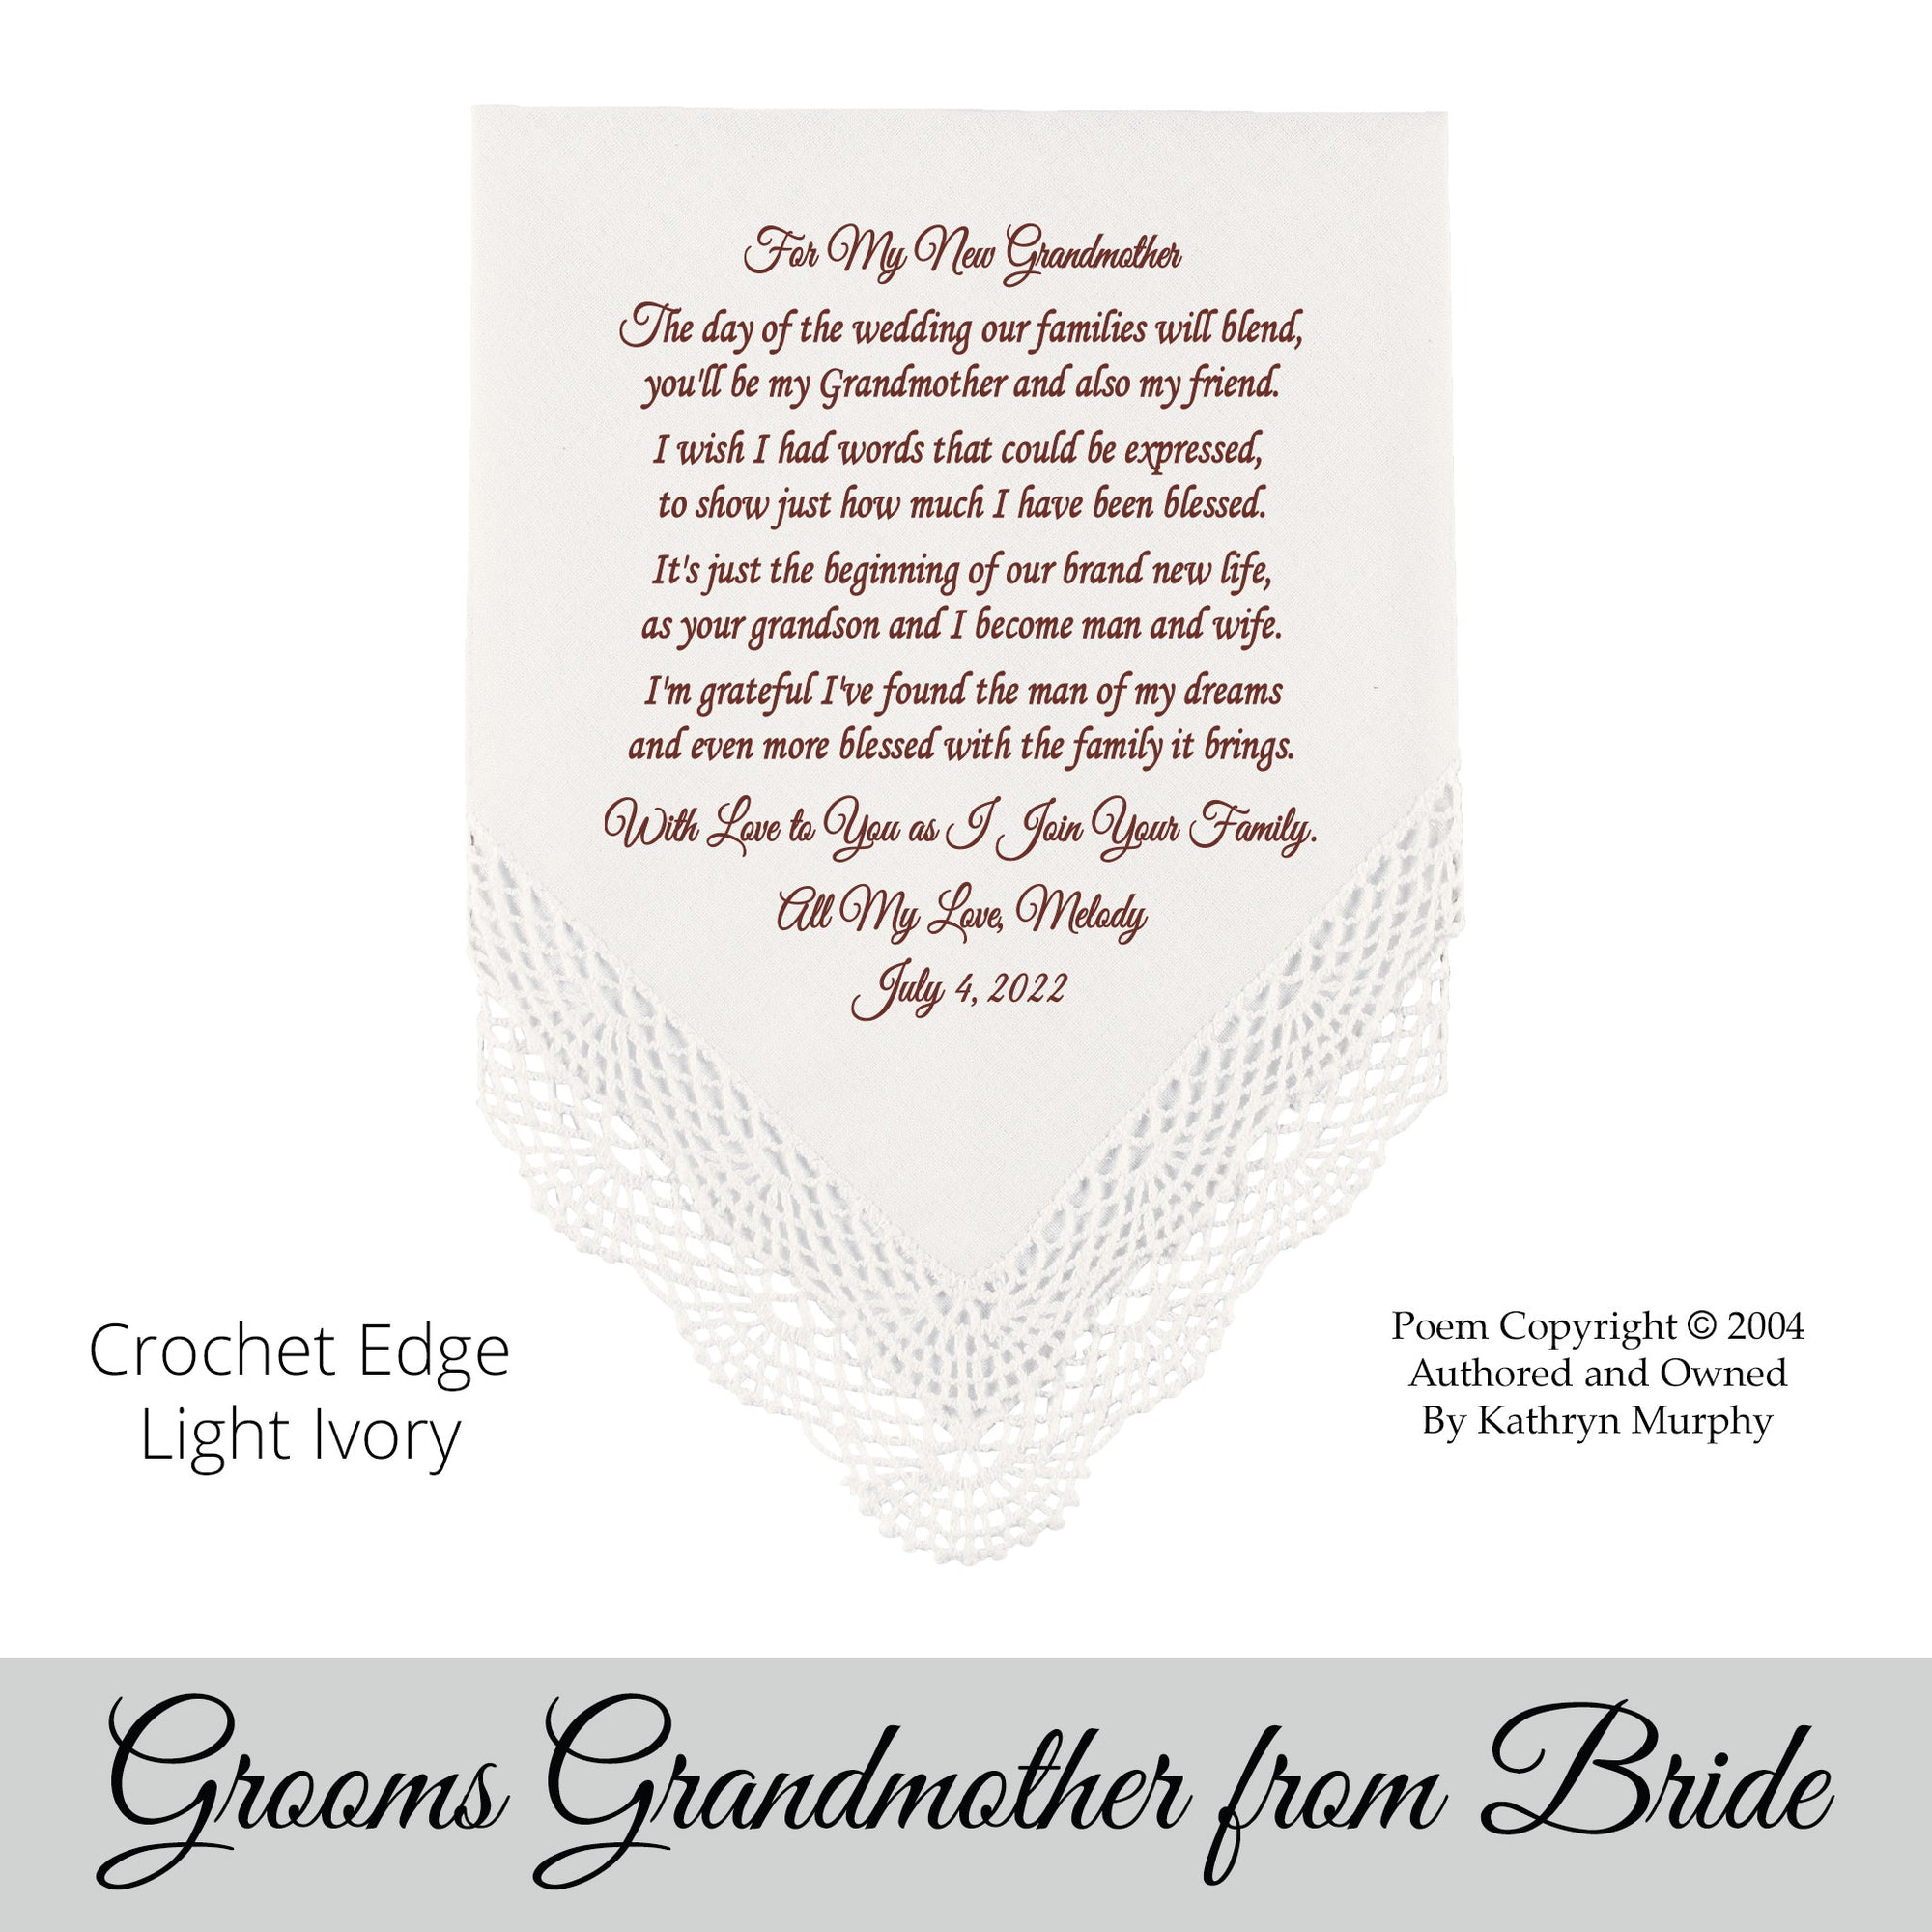 Traditional Wedding Gift From Groom To Bride: Poem Printed Wedding Hankie Bride To The Groom's